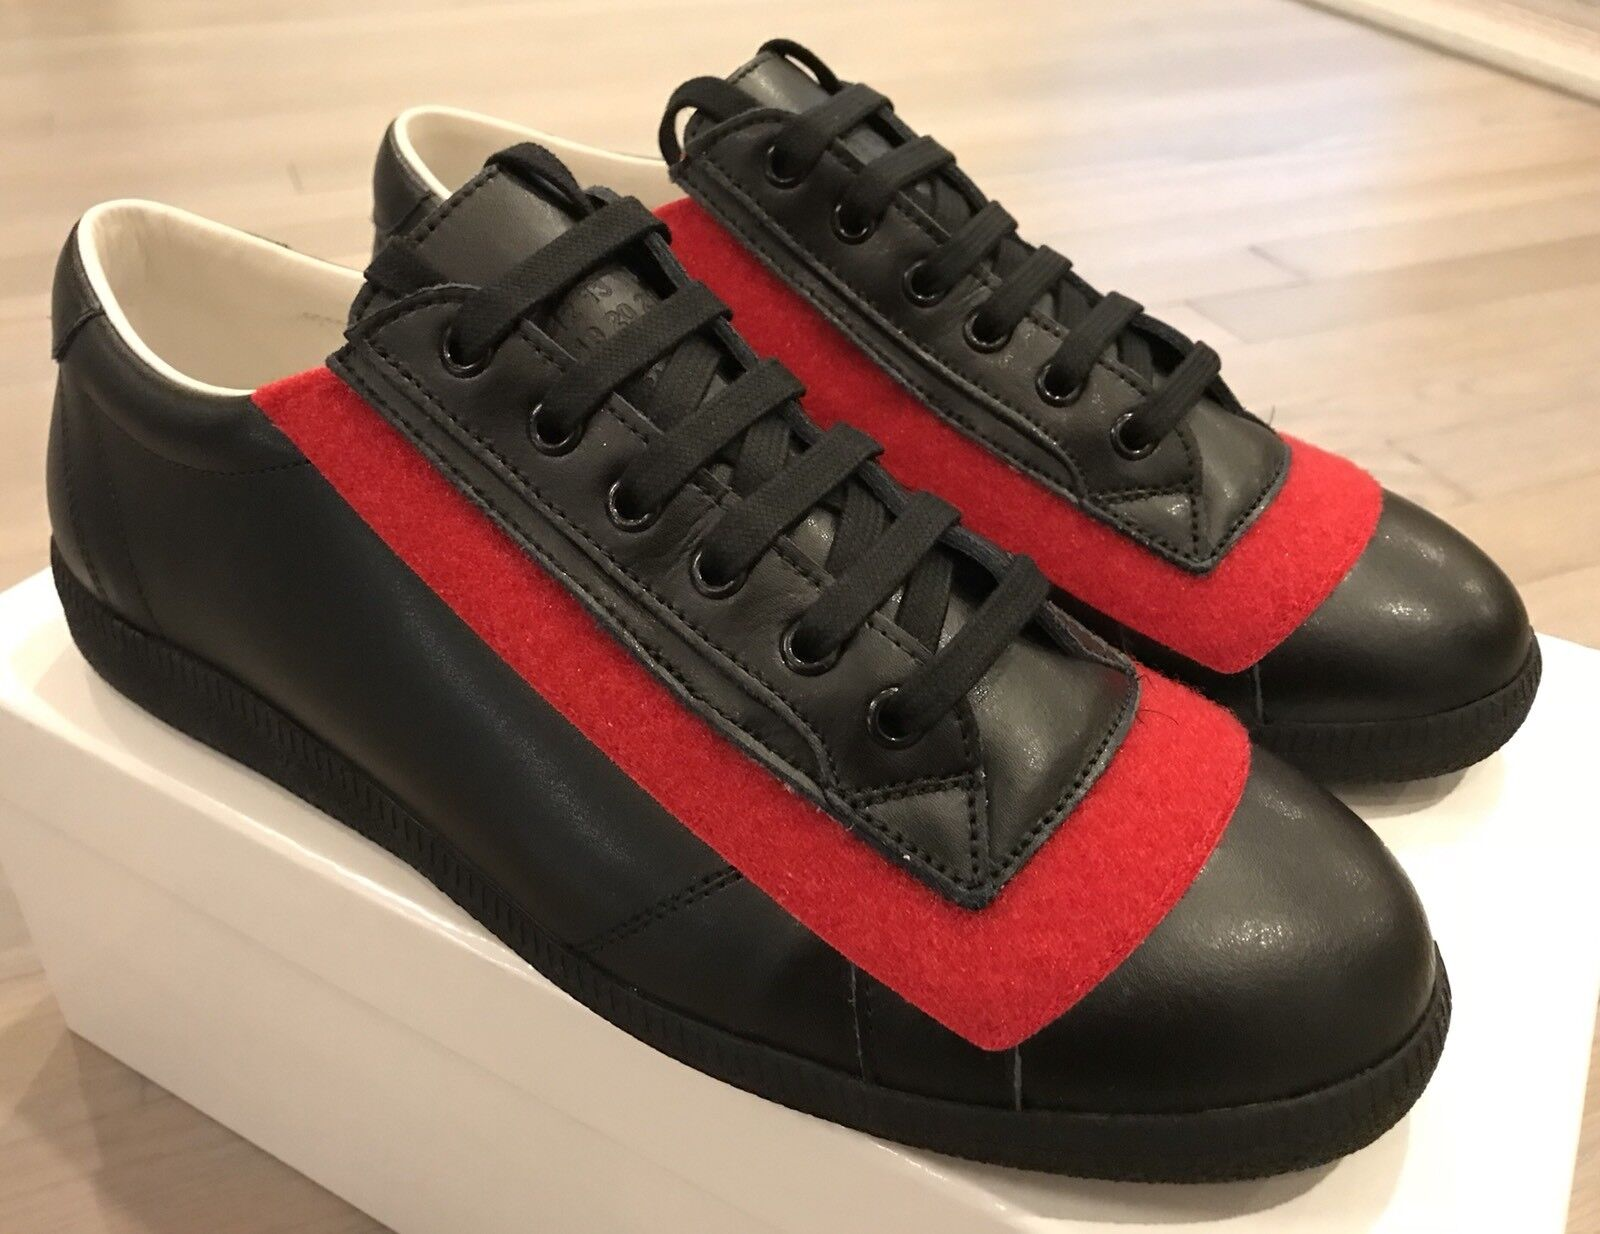 850 Maison Margiela Black Leather Red Velcro Sneakers size US 9.5 Made in Italy